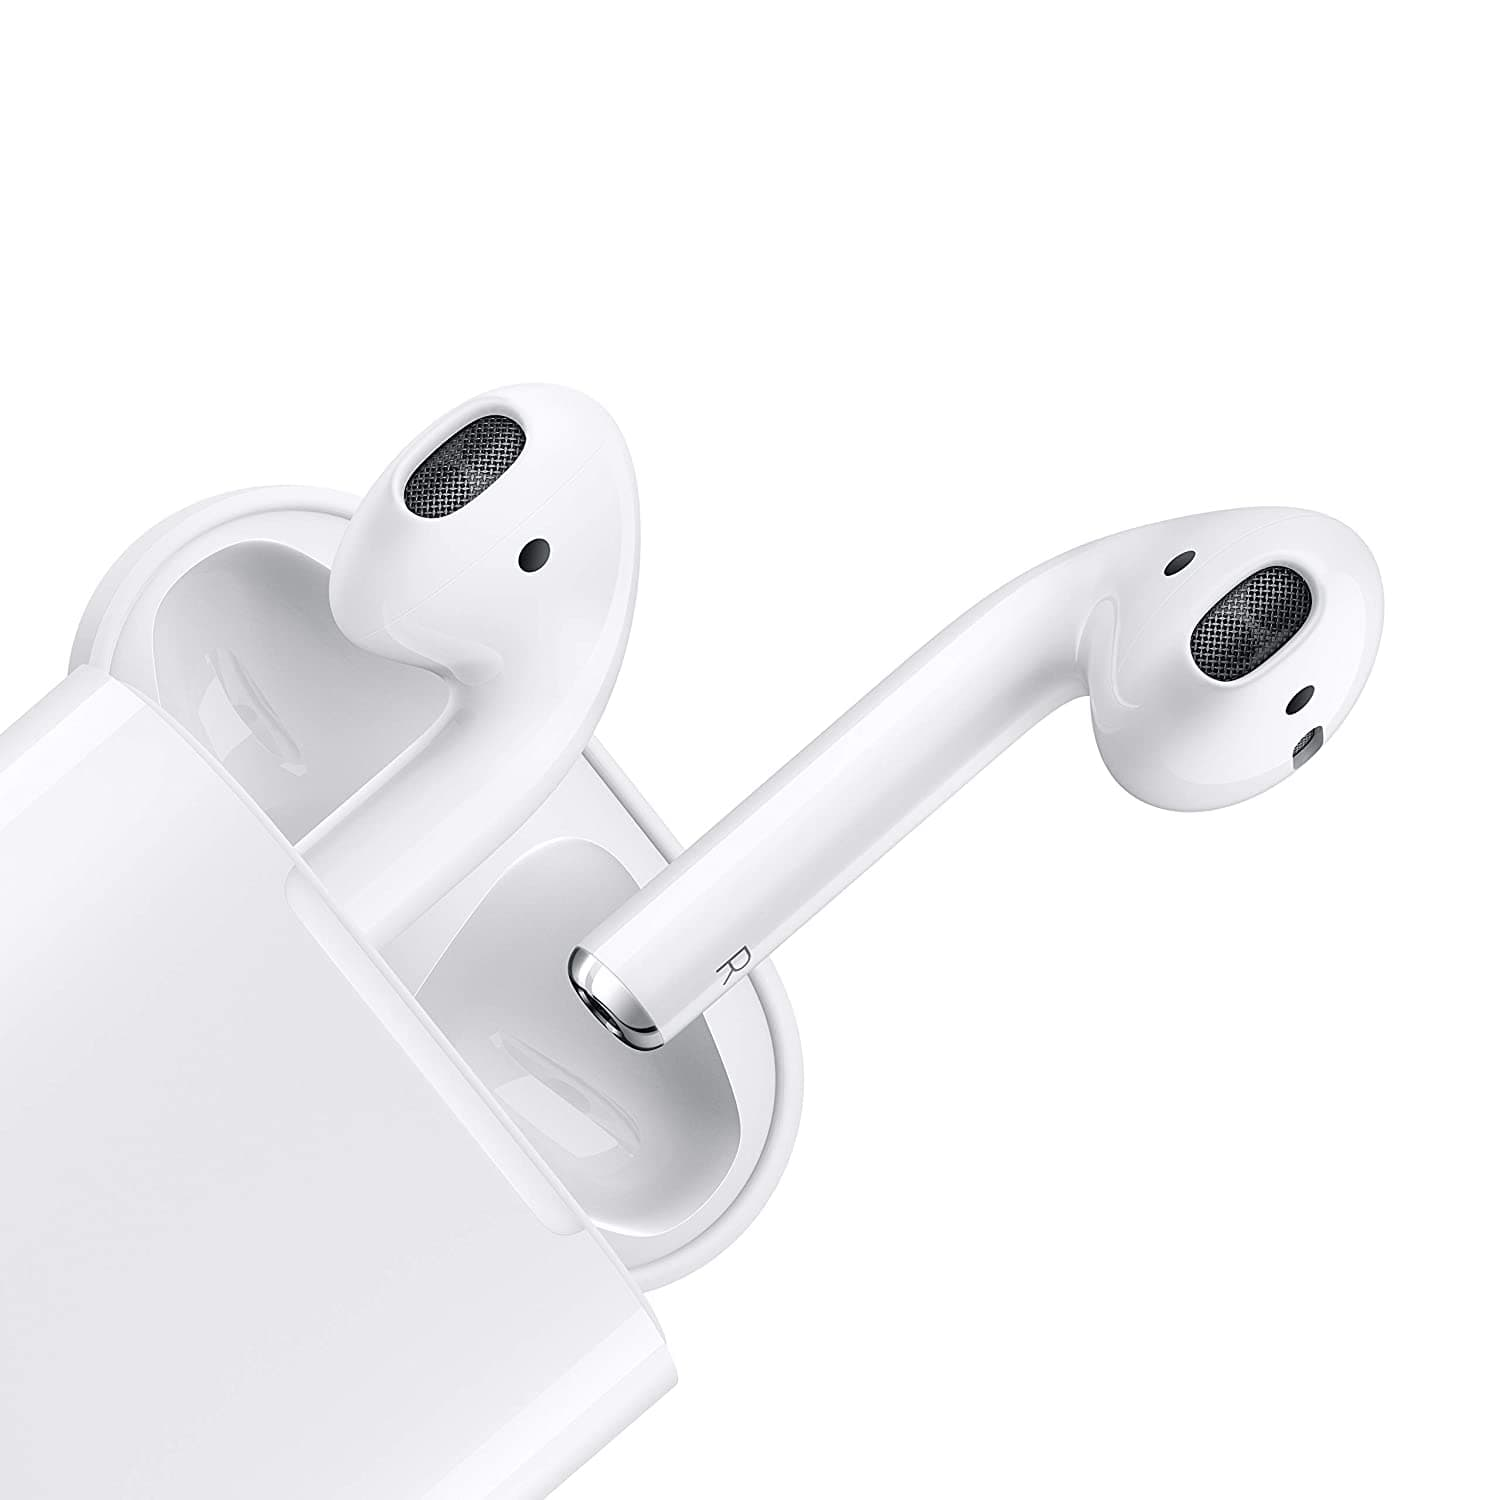 Amazon: Apple AirPods with Charging Case $129 + FS